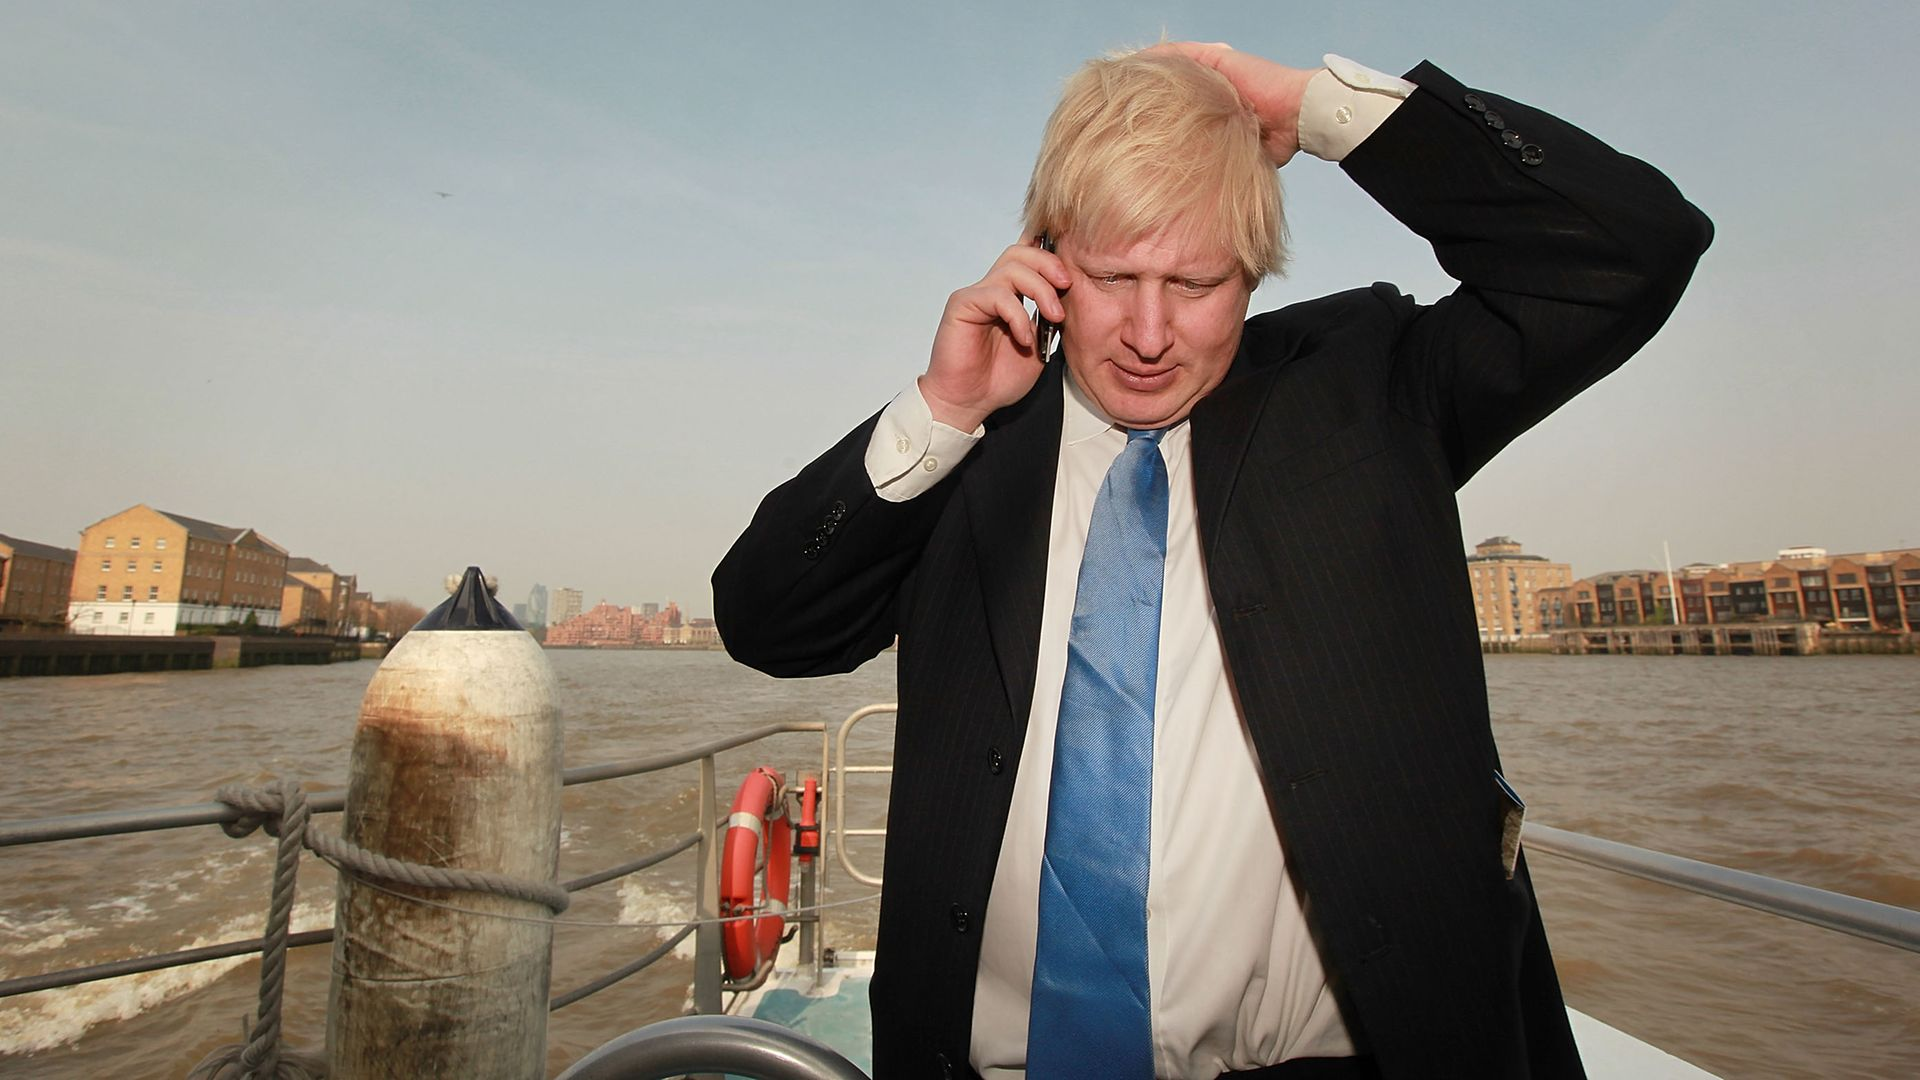 Boris Johnson on his mobile phone, while mayor of London in 2009 - Credit: Getty Images